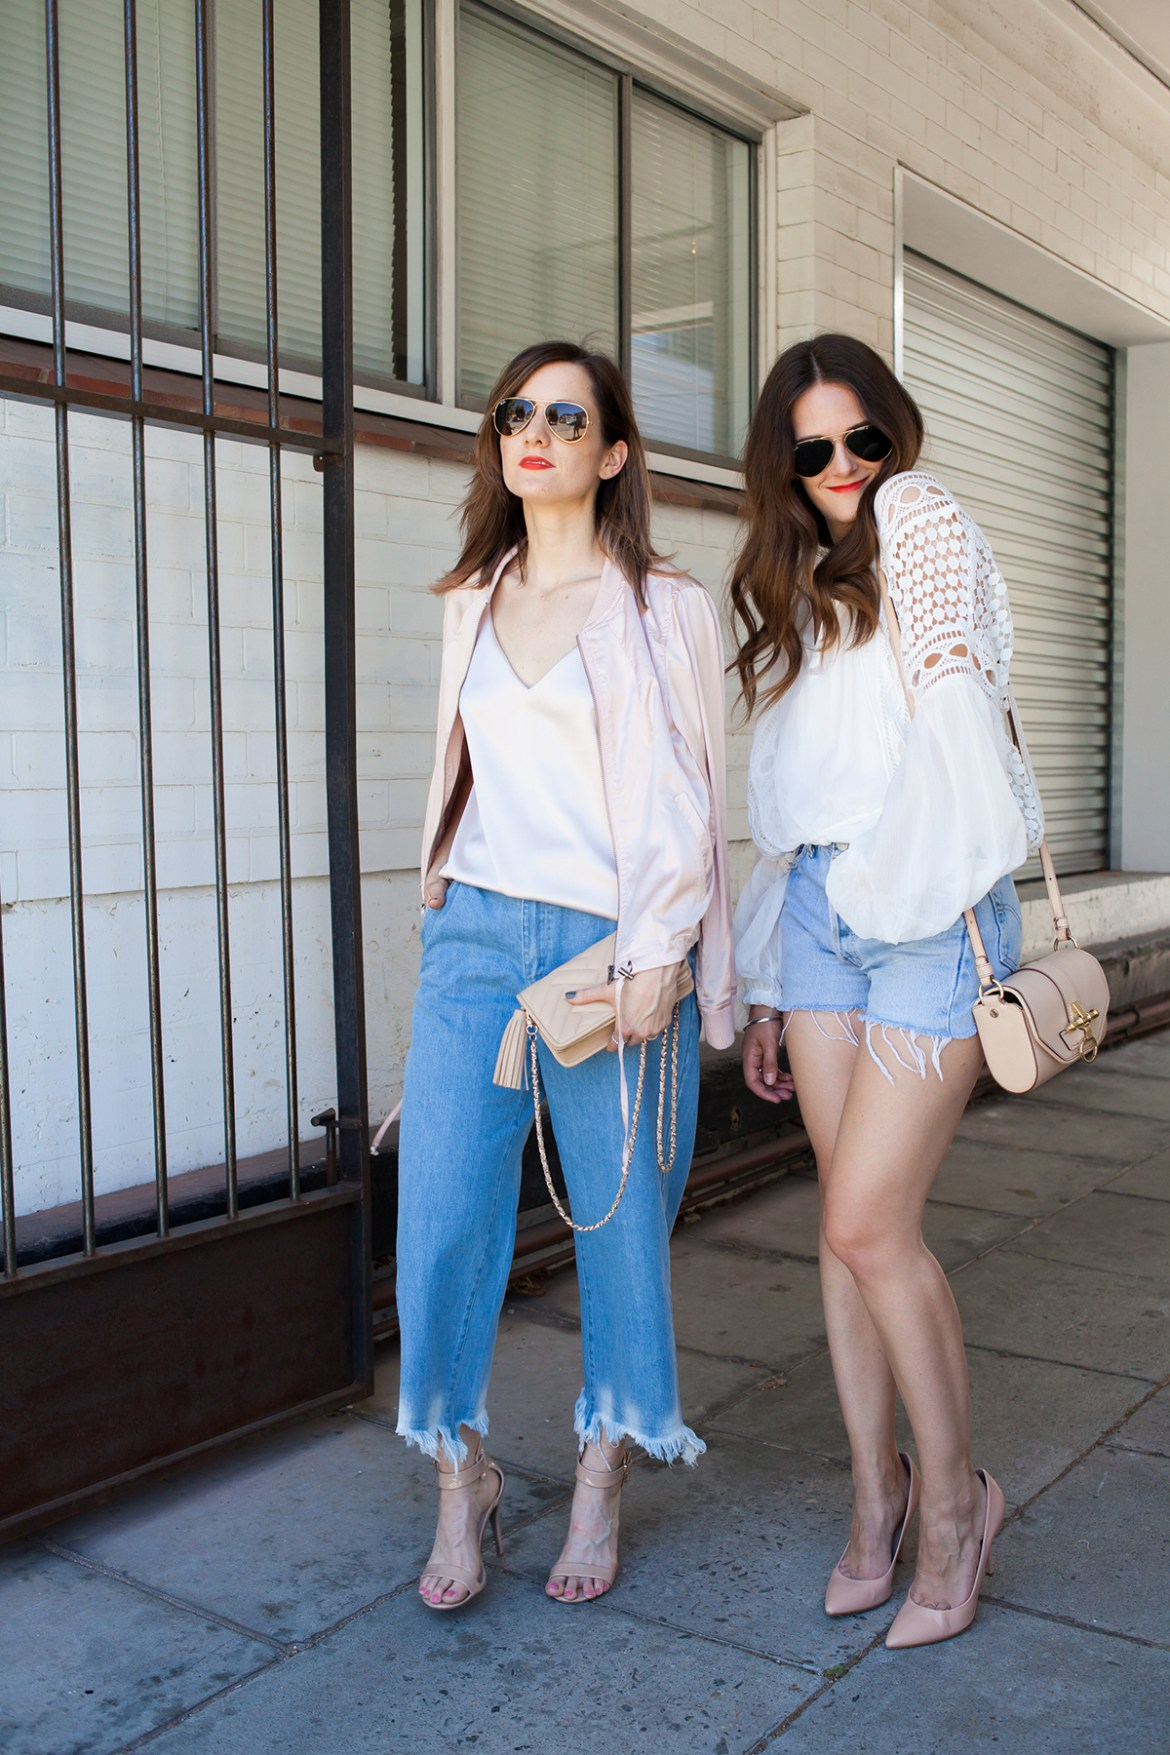 Perth fashion bloggers Inspiring Wit and She Does in MVN label street style